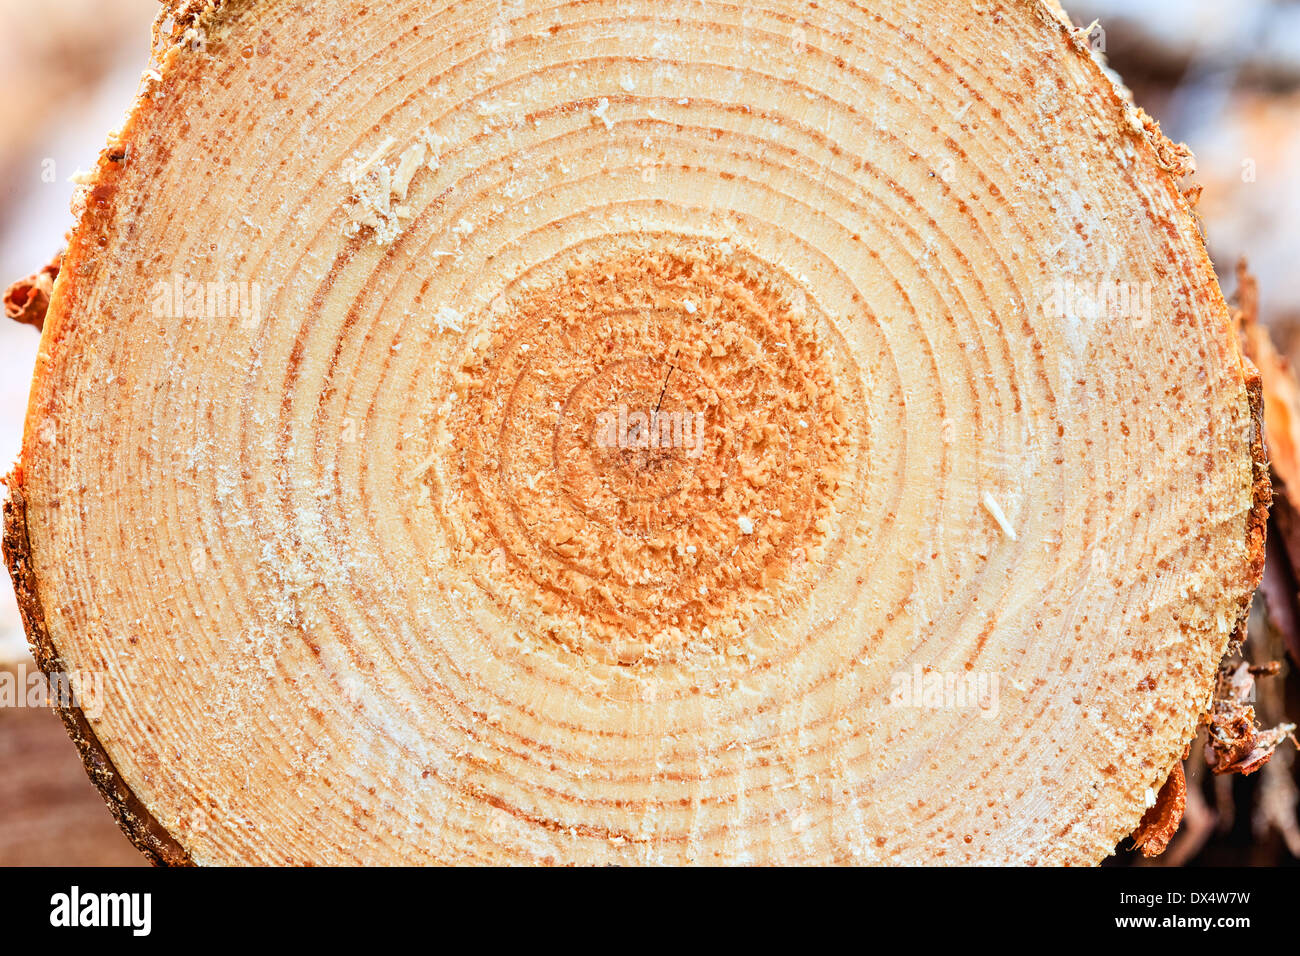 Annual rings on sawn pine tree timber wood texture Pine tree timber